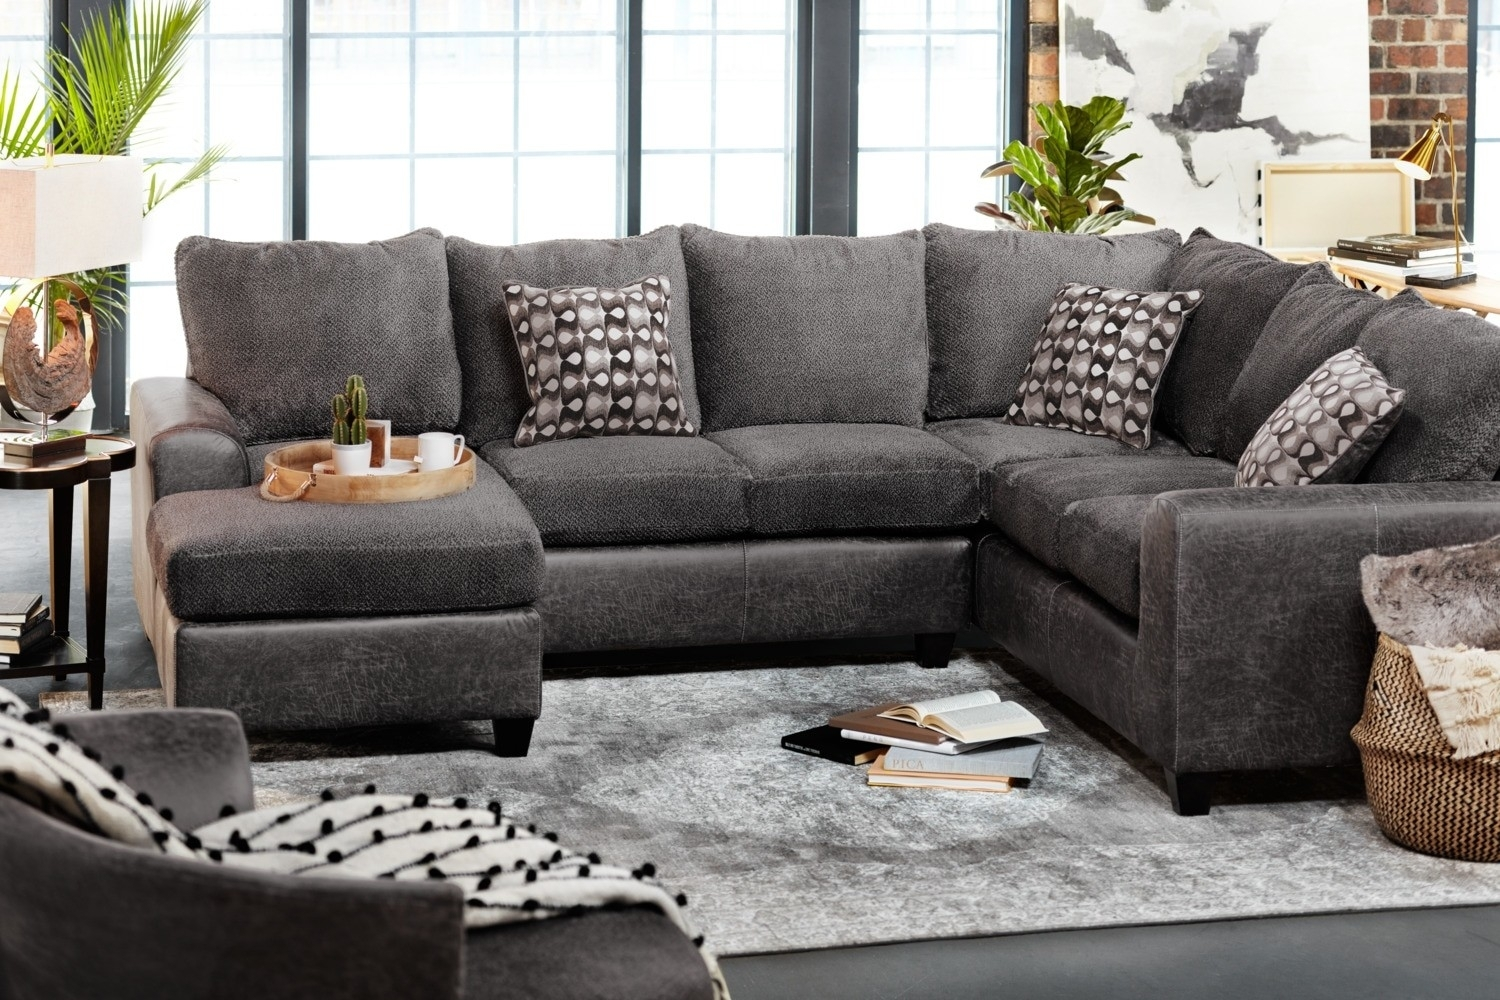 3 Piece Sectional Malbry Point W Laf Chaise Living Spaces 223533 0 intended for Malbry Point 3 Piece Sectionals With Raf Chaise